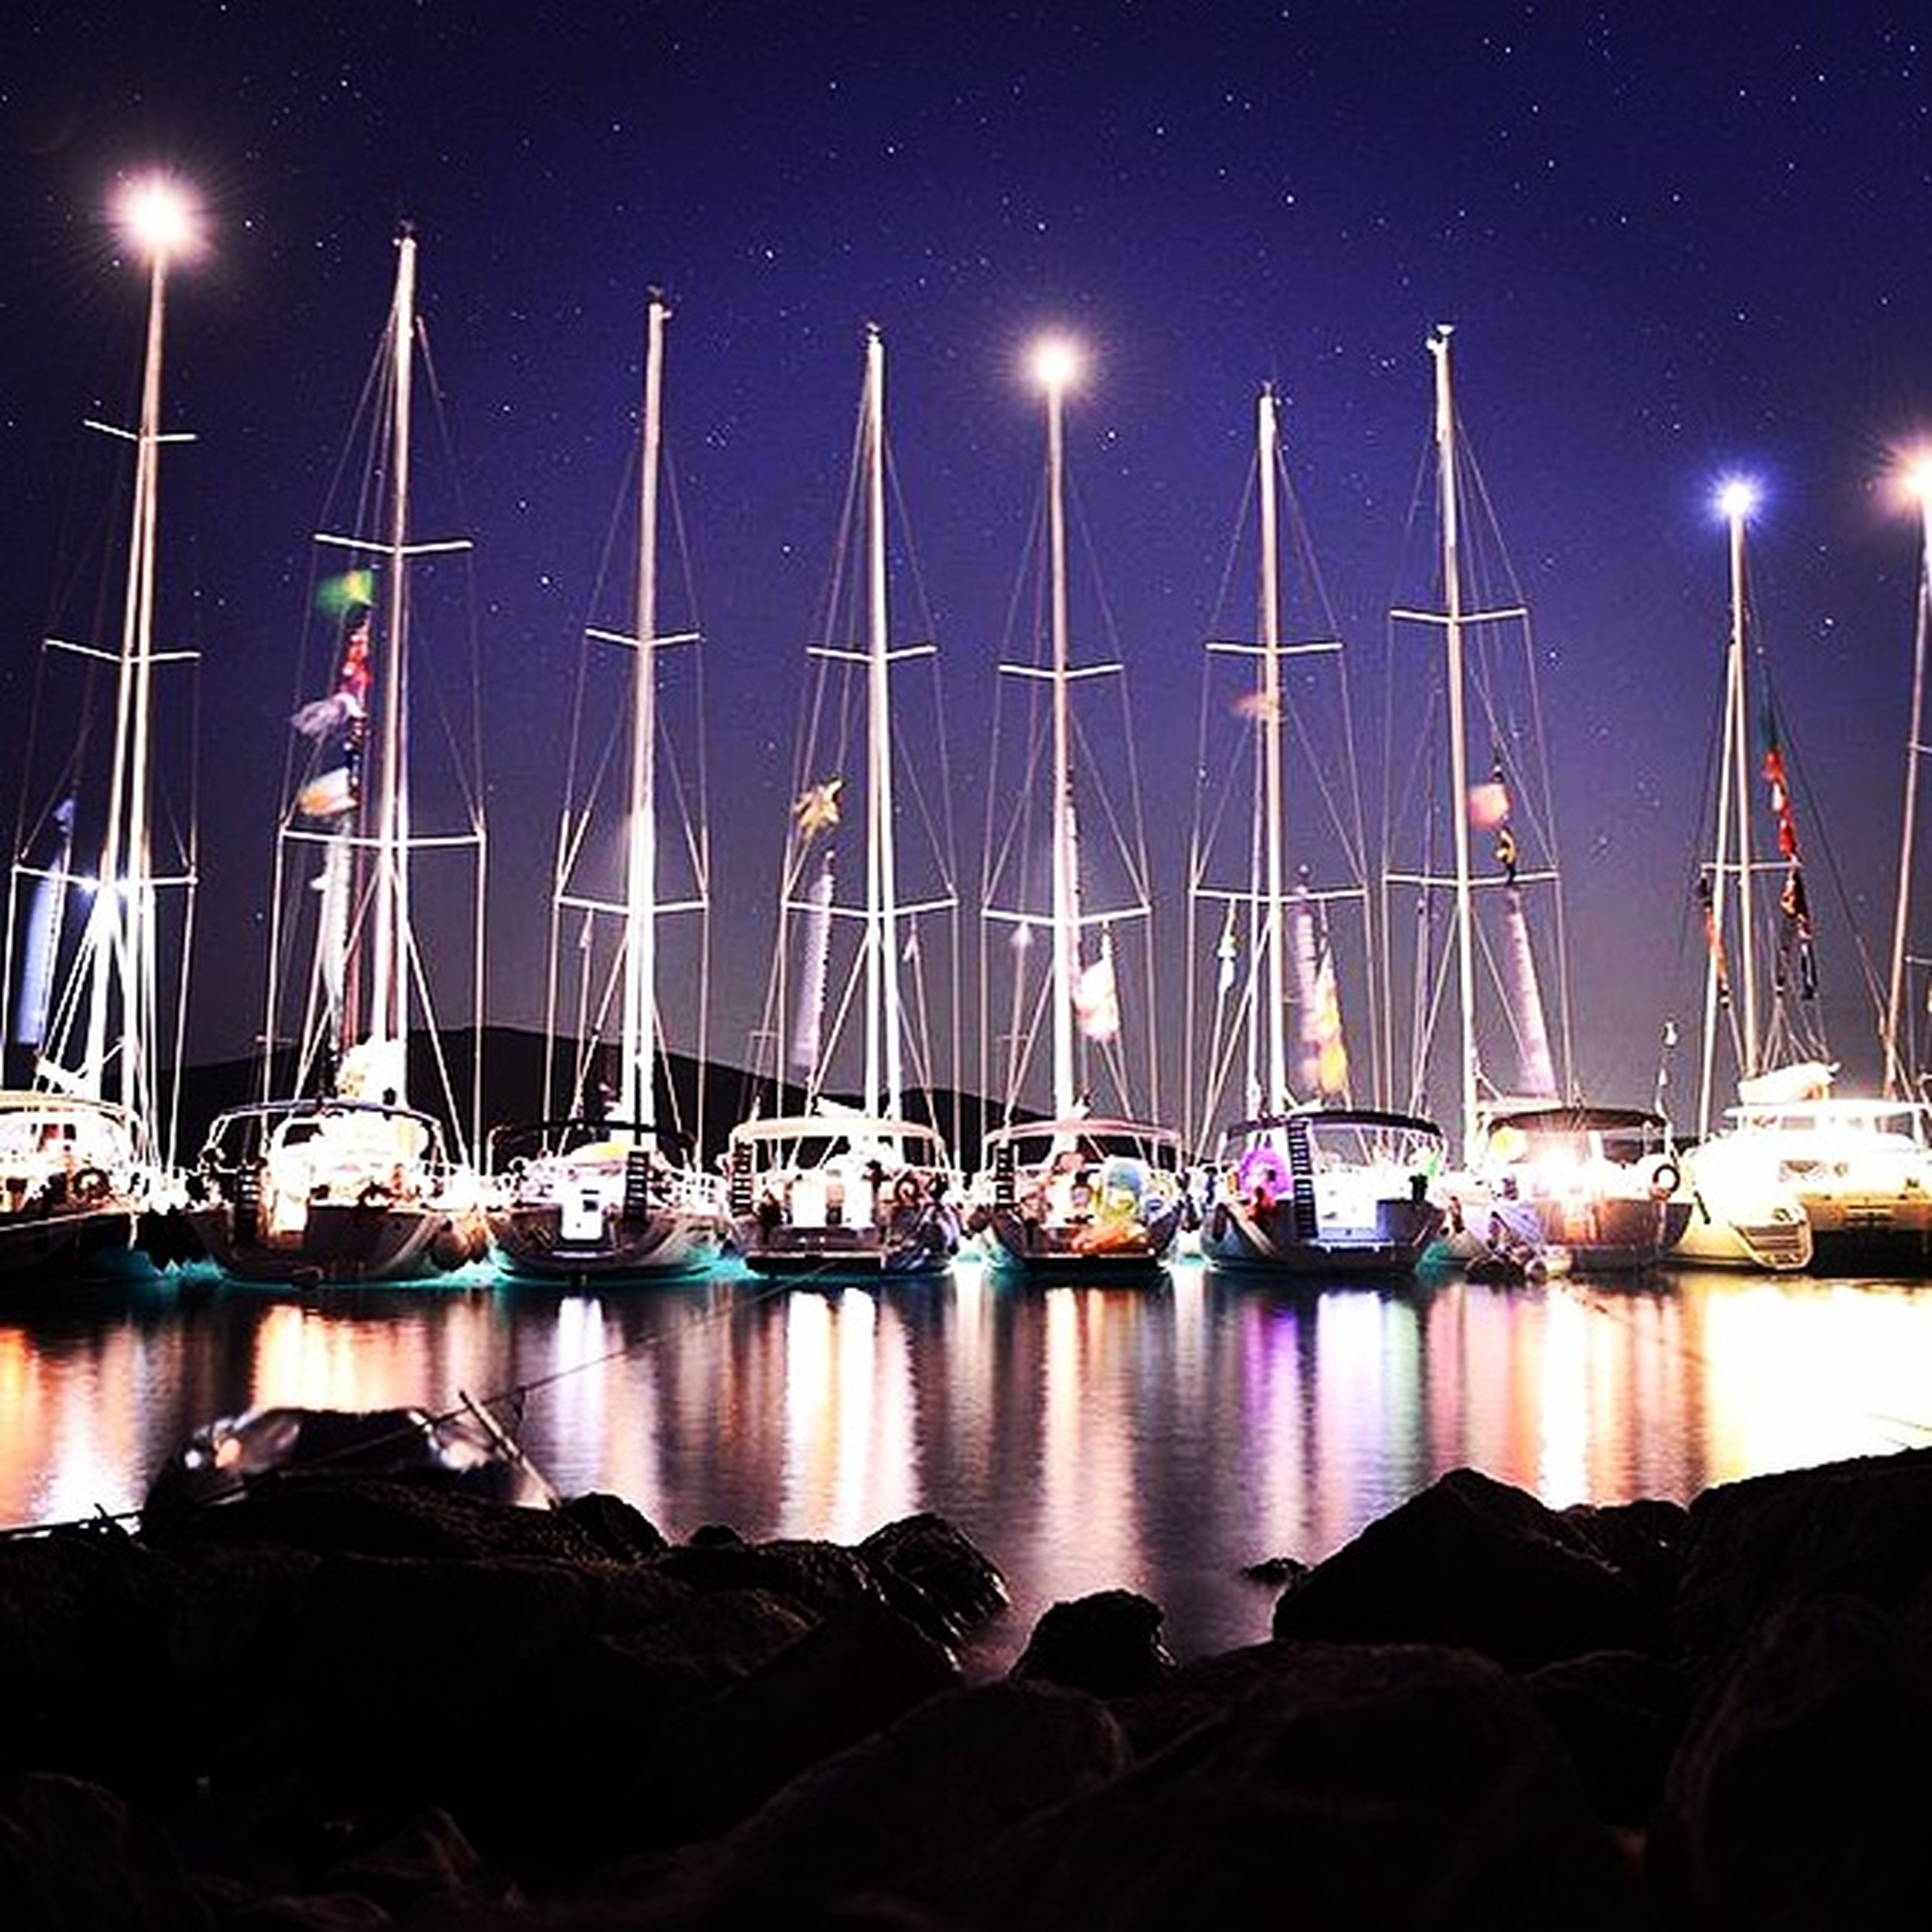 nautical vessel, water, mast, transportation, harbor, night, moored, mode of transport, boat, reflection, sky, sailboat, illuminated, sea, waterfront, outdoors, travel, lake, in a row, no people